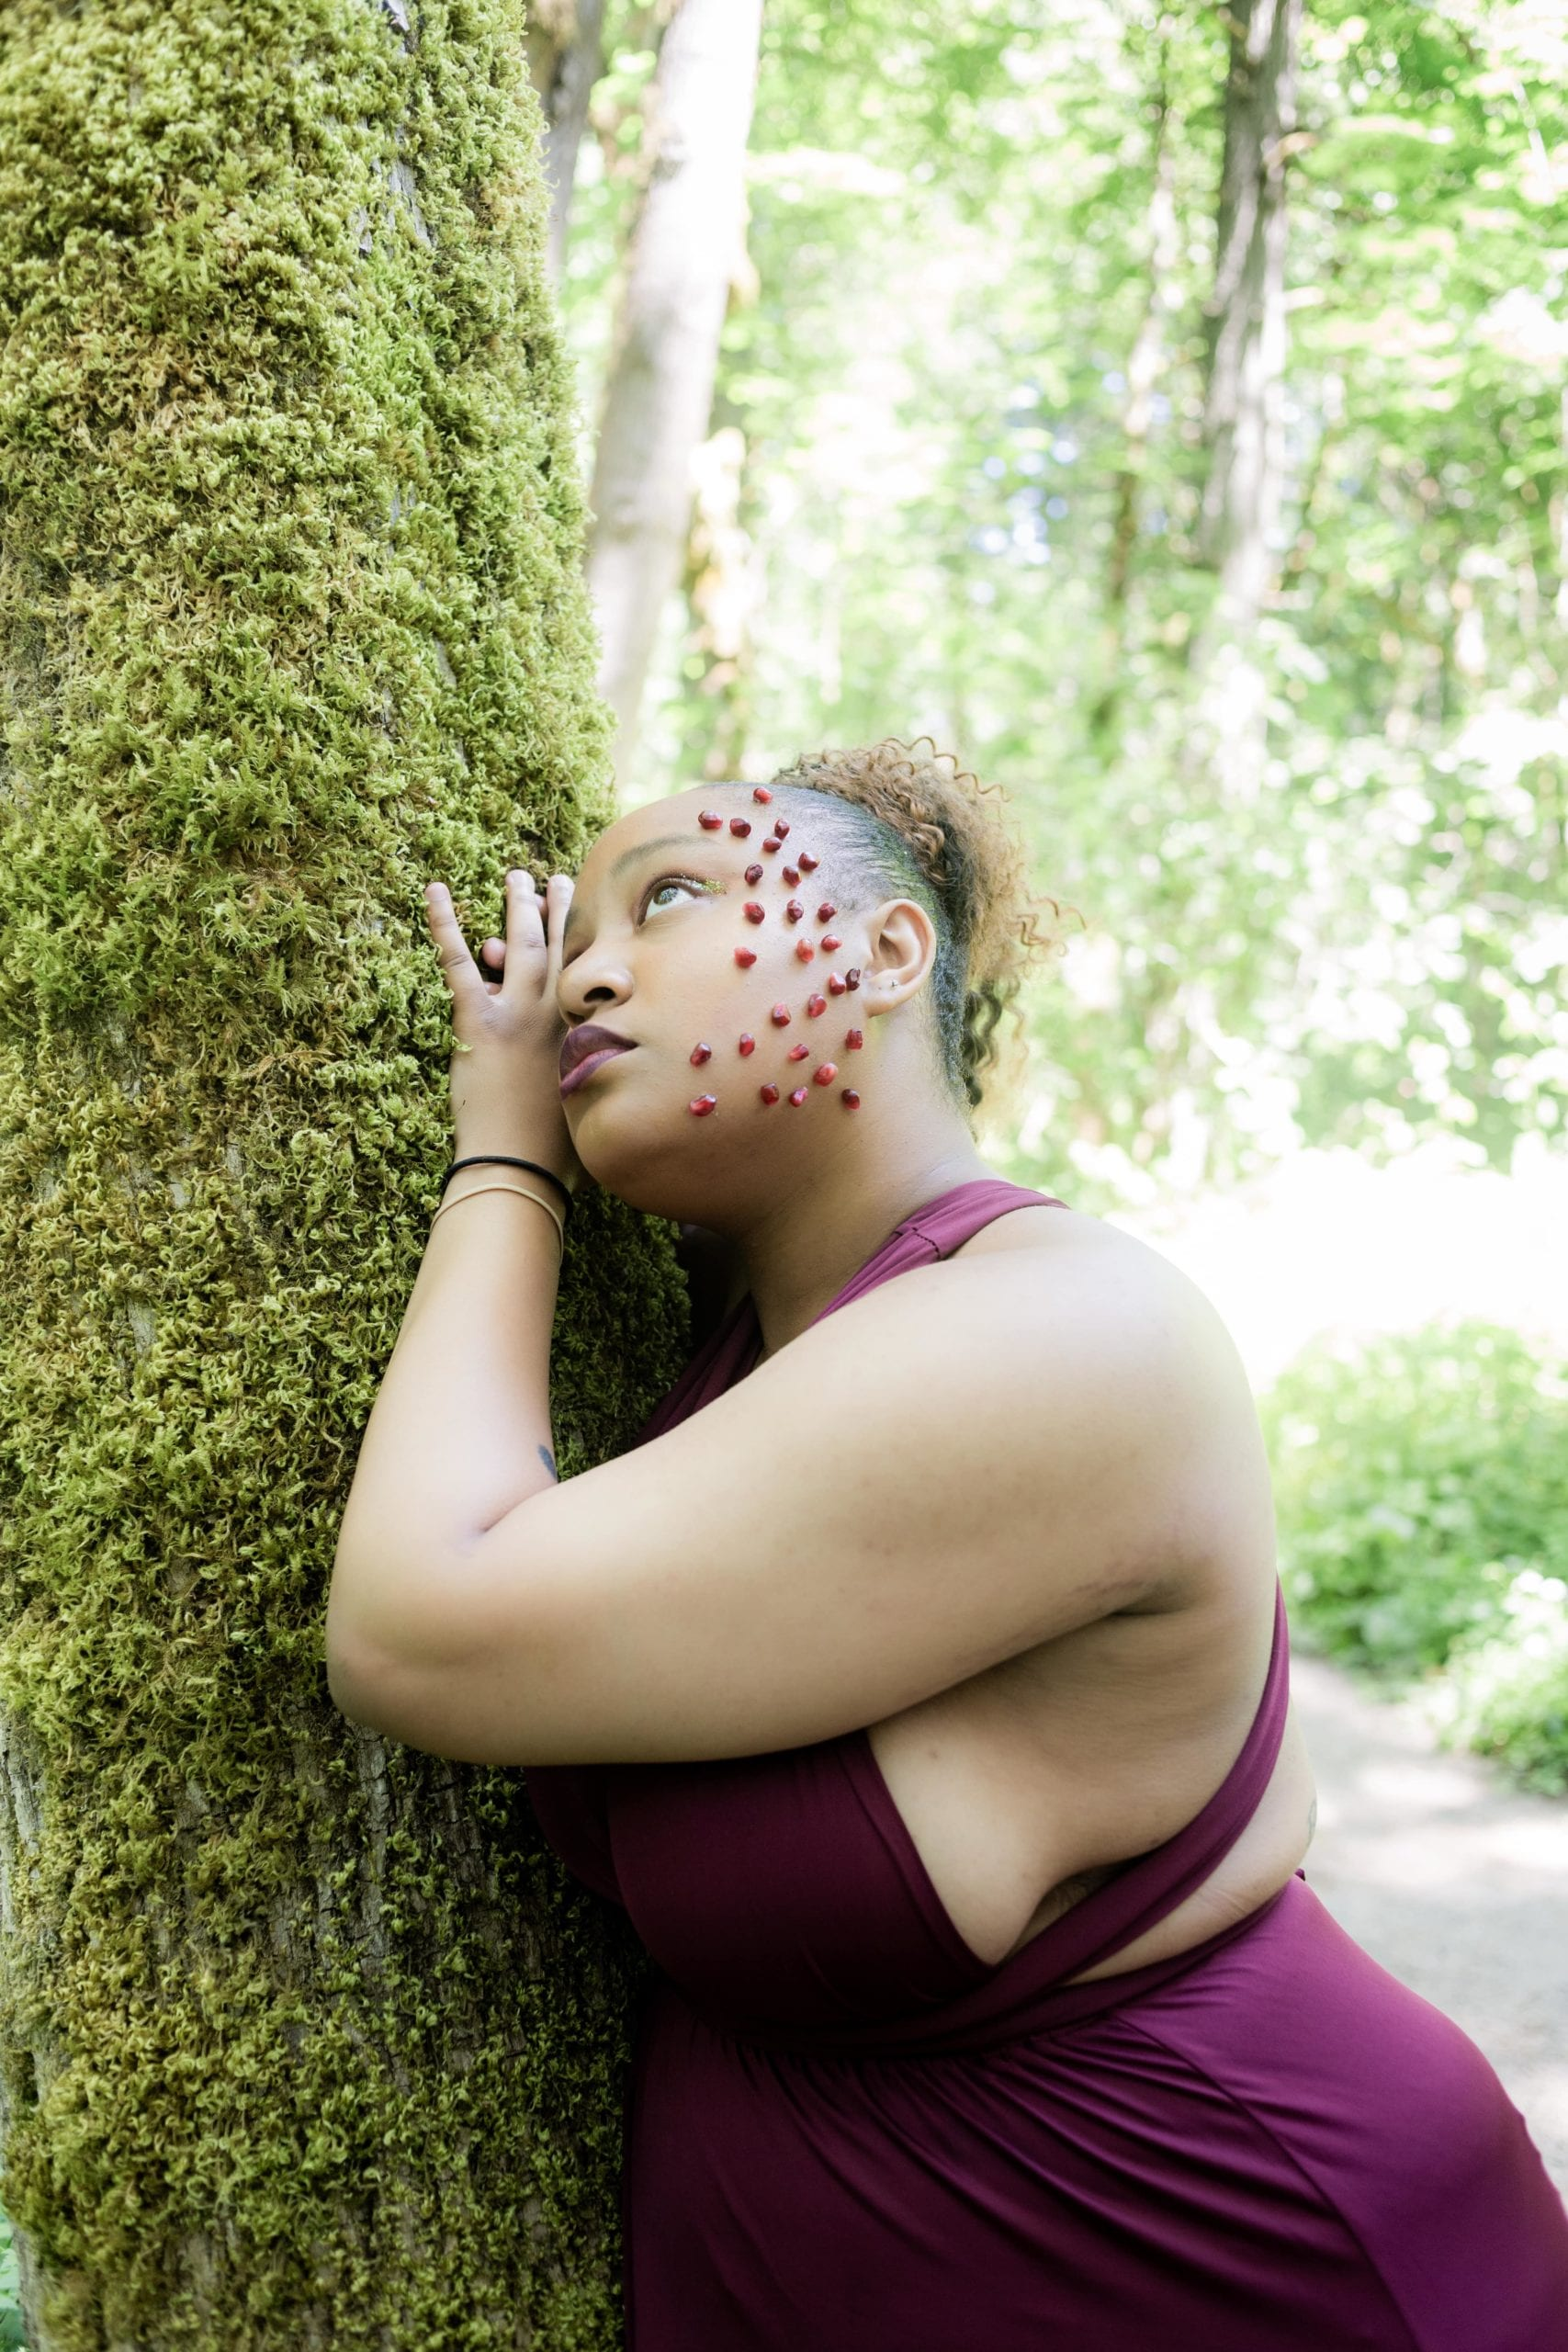 Reagan as Persephone leaning forward on a moss-covered tree with her head resting on her hands, looking up to the sky.